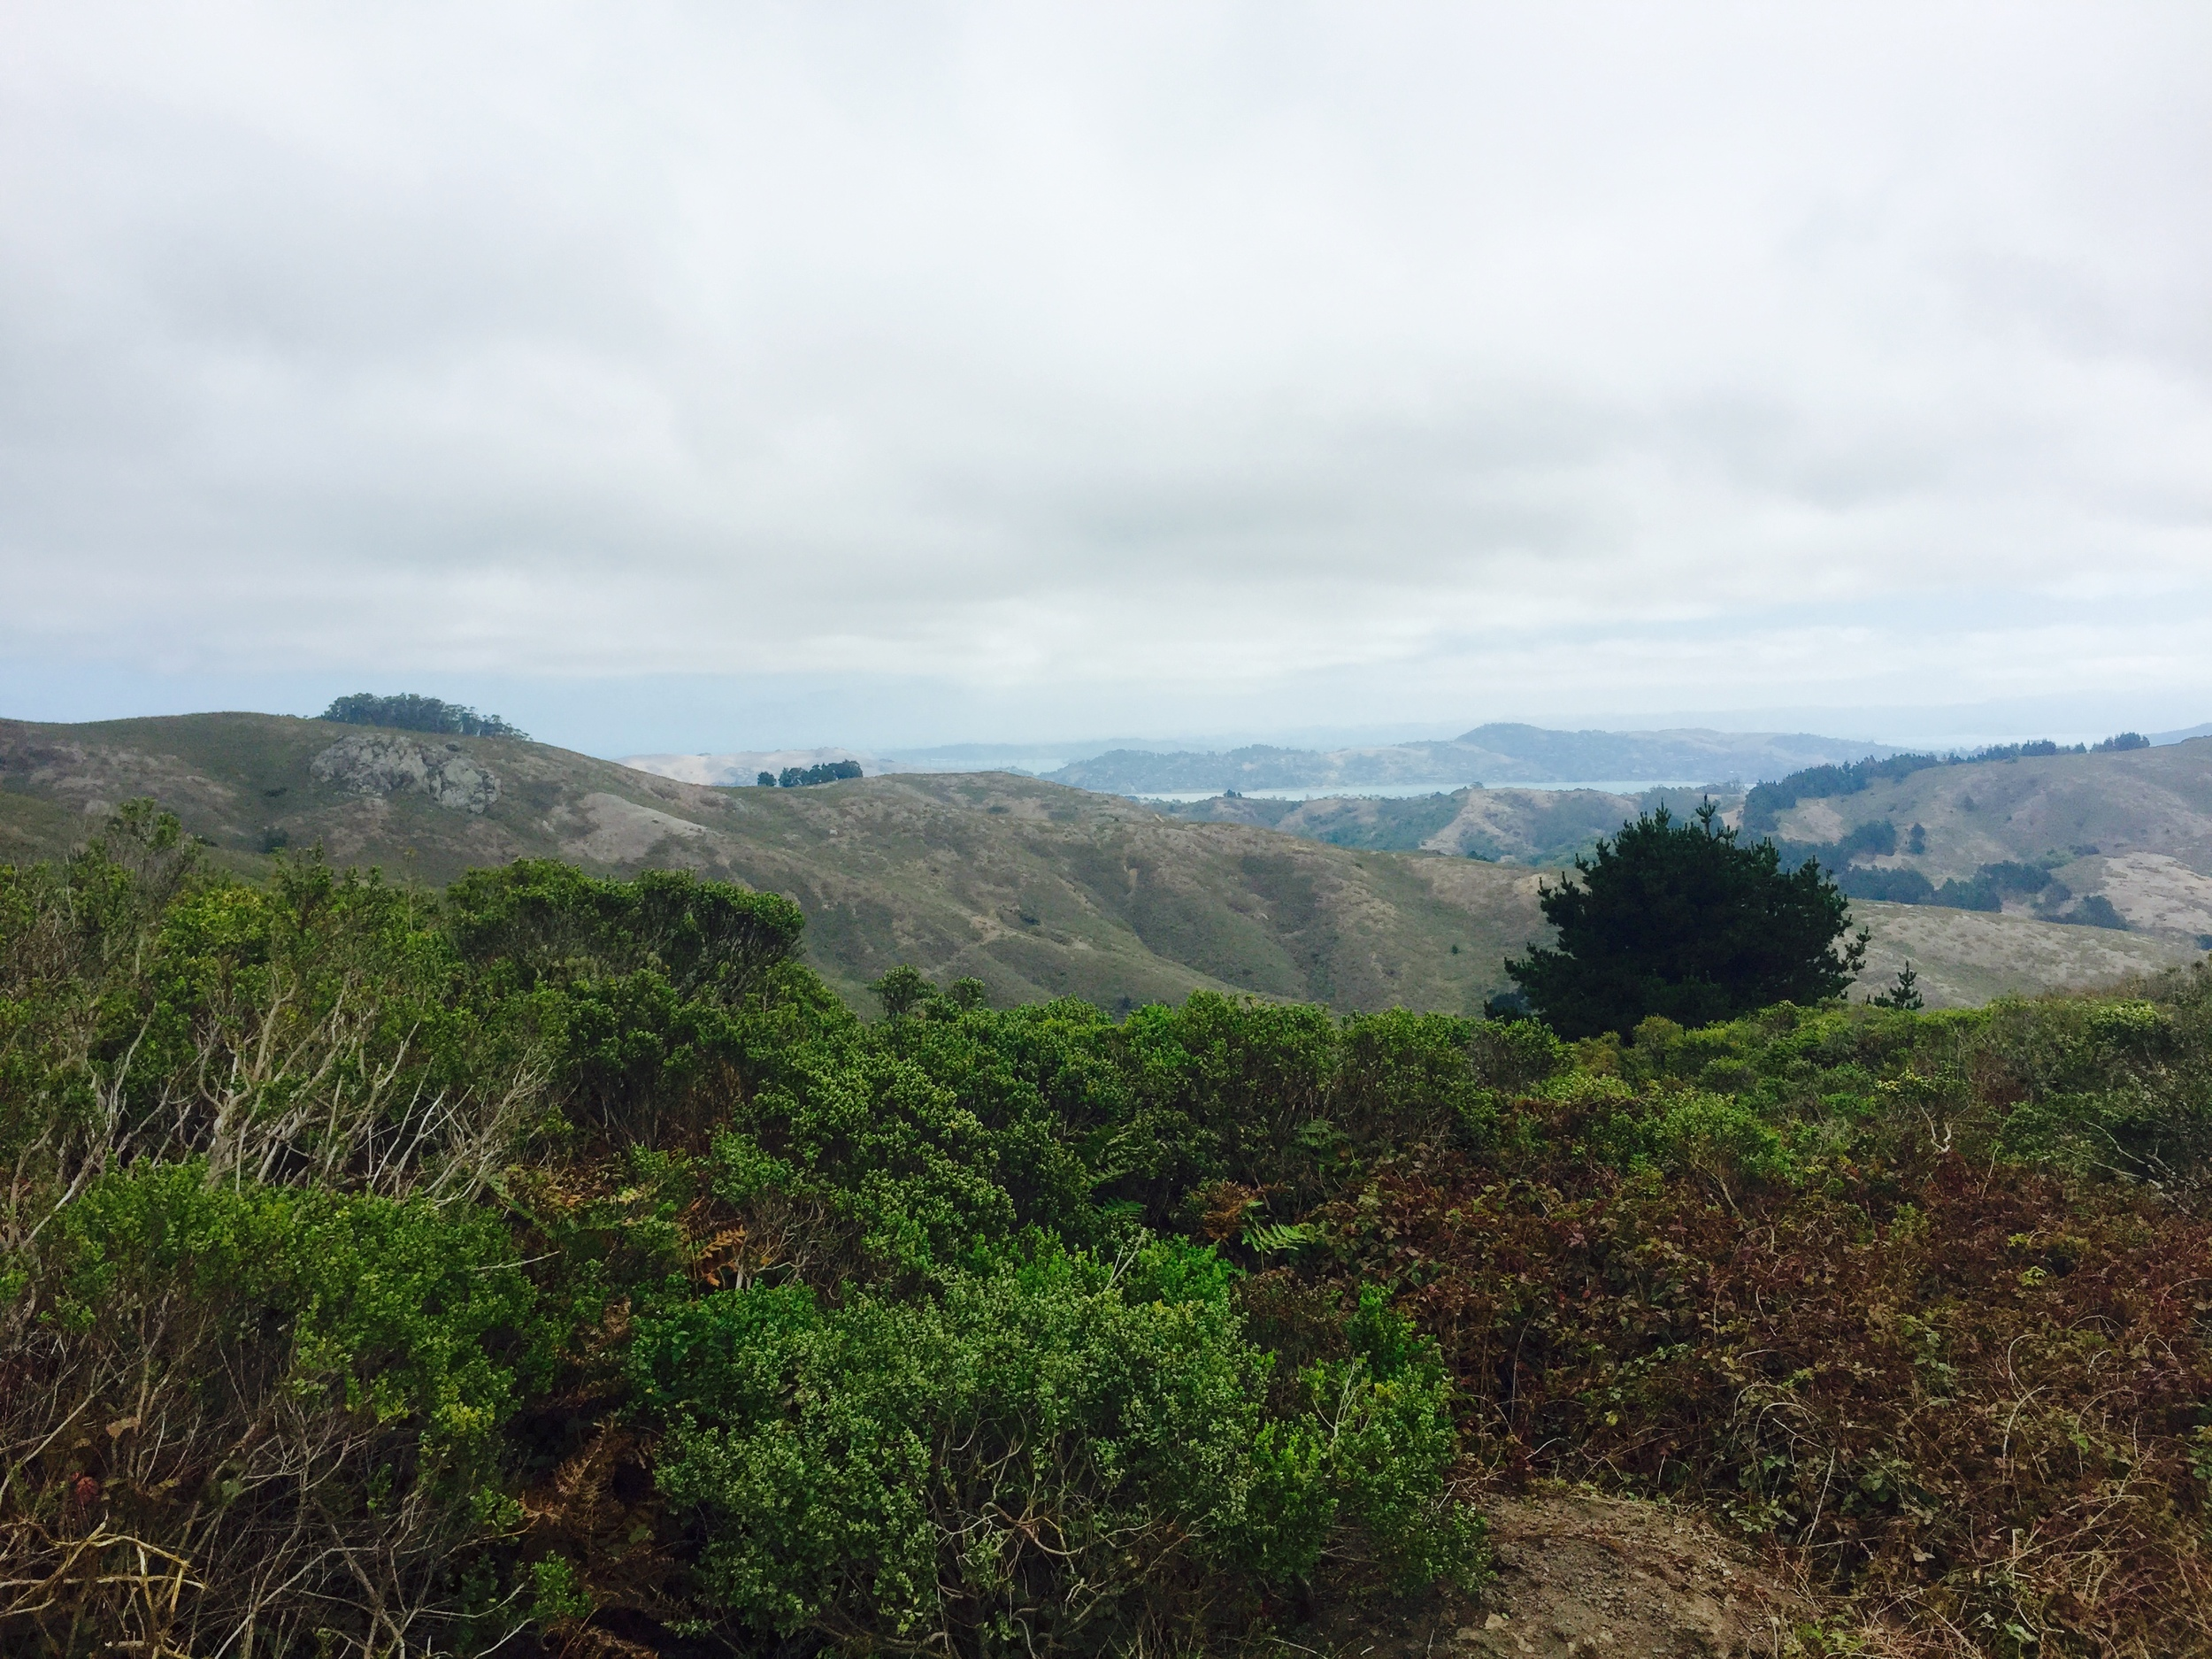 View from the top of the hike.